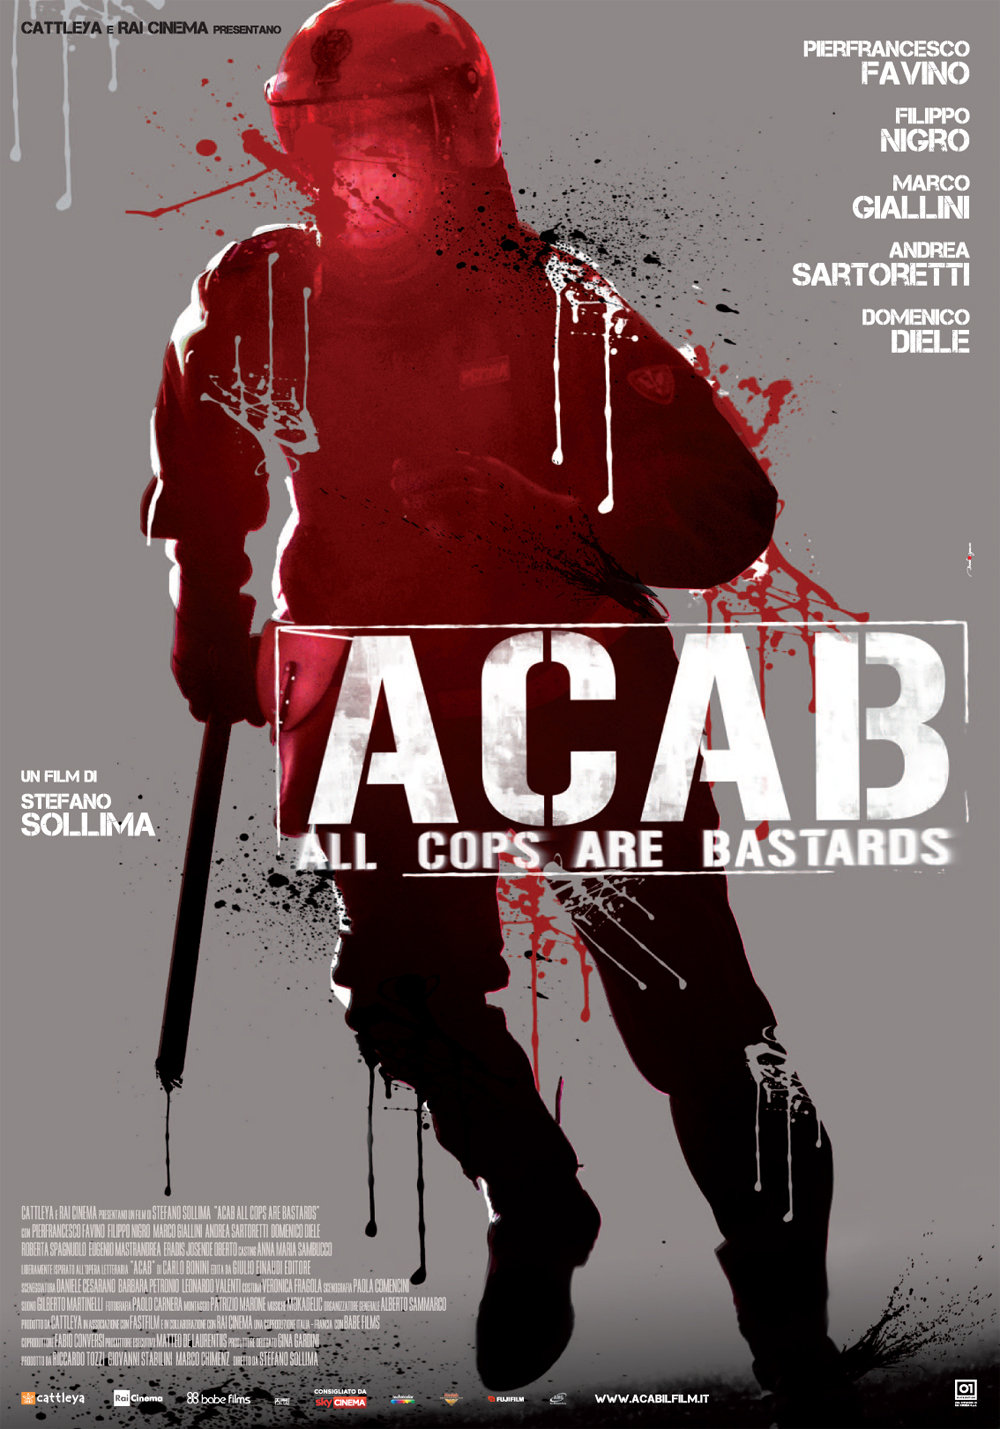 a.c.a.b.all cops are bastards